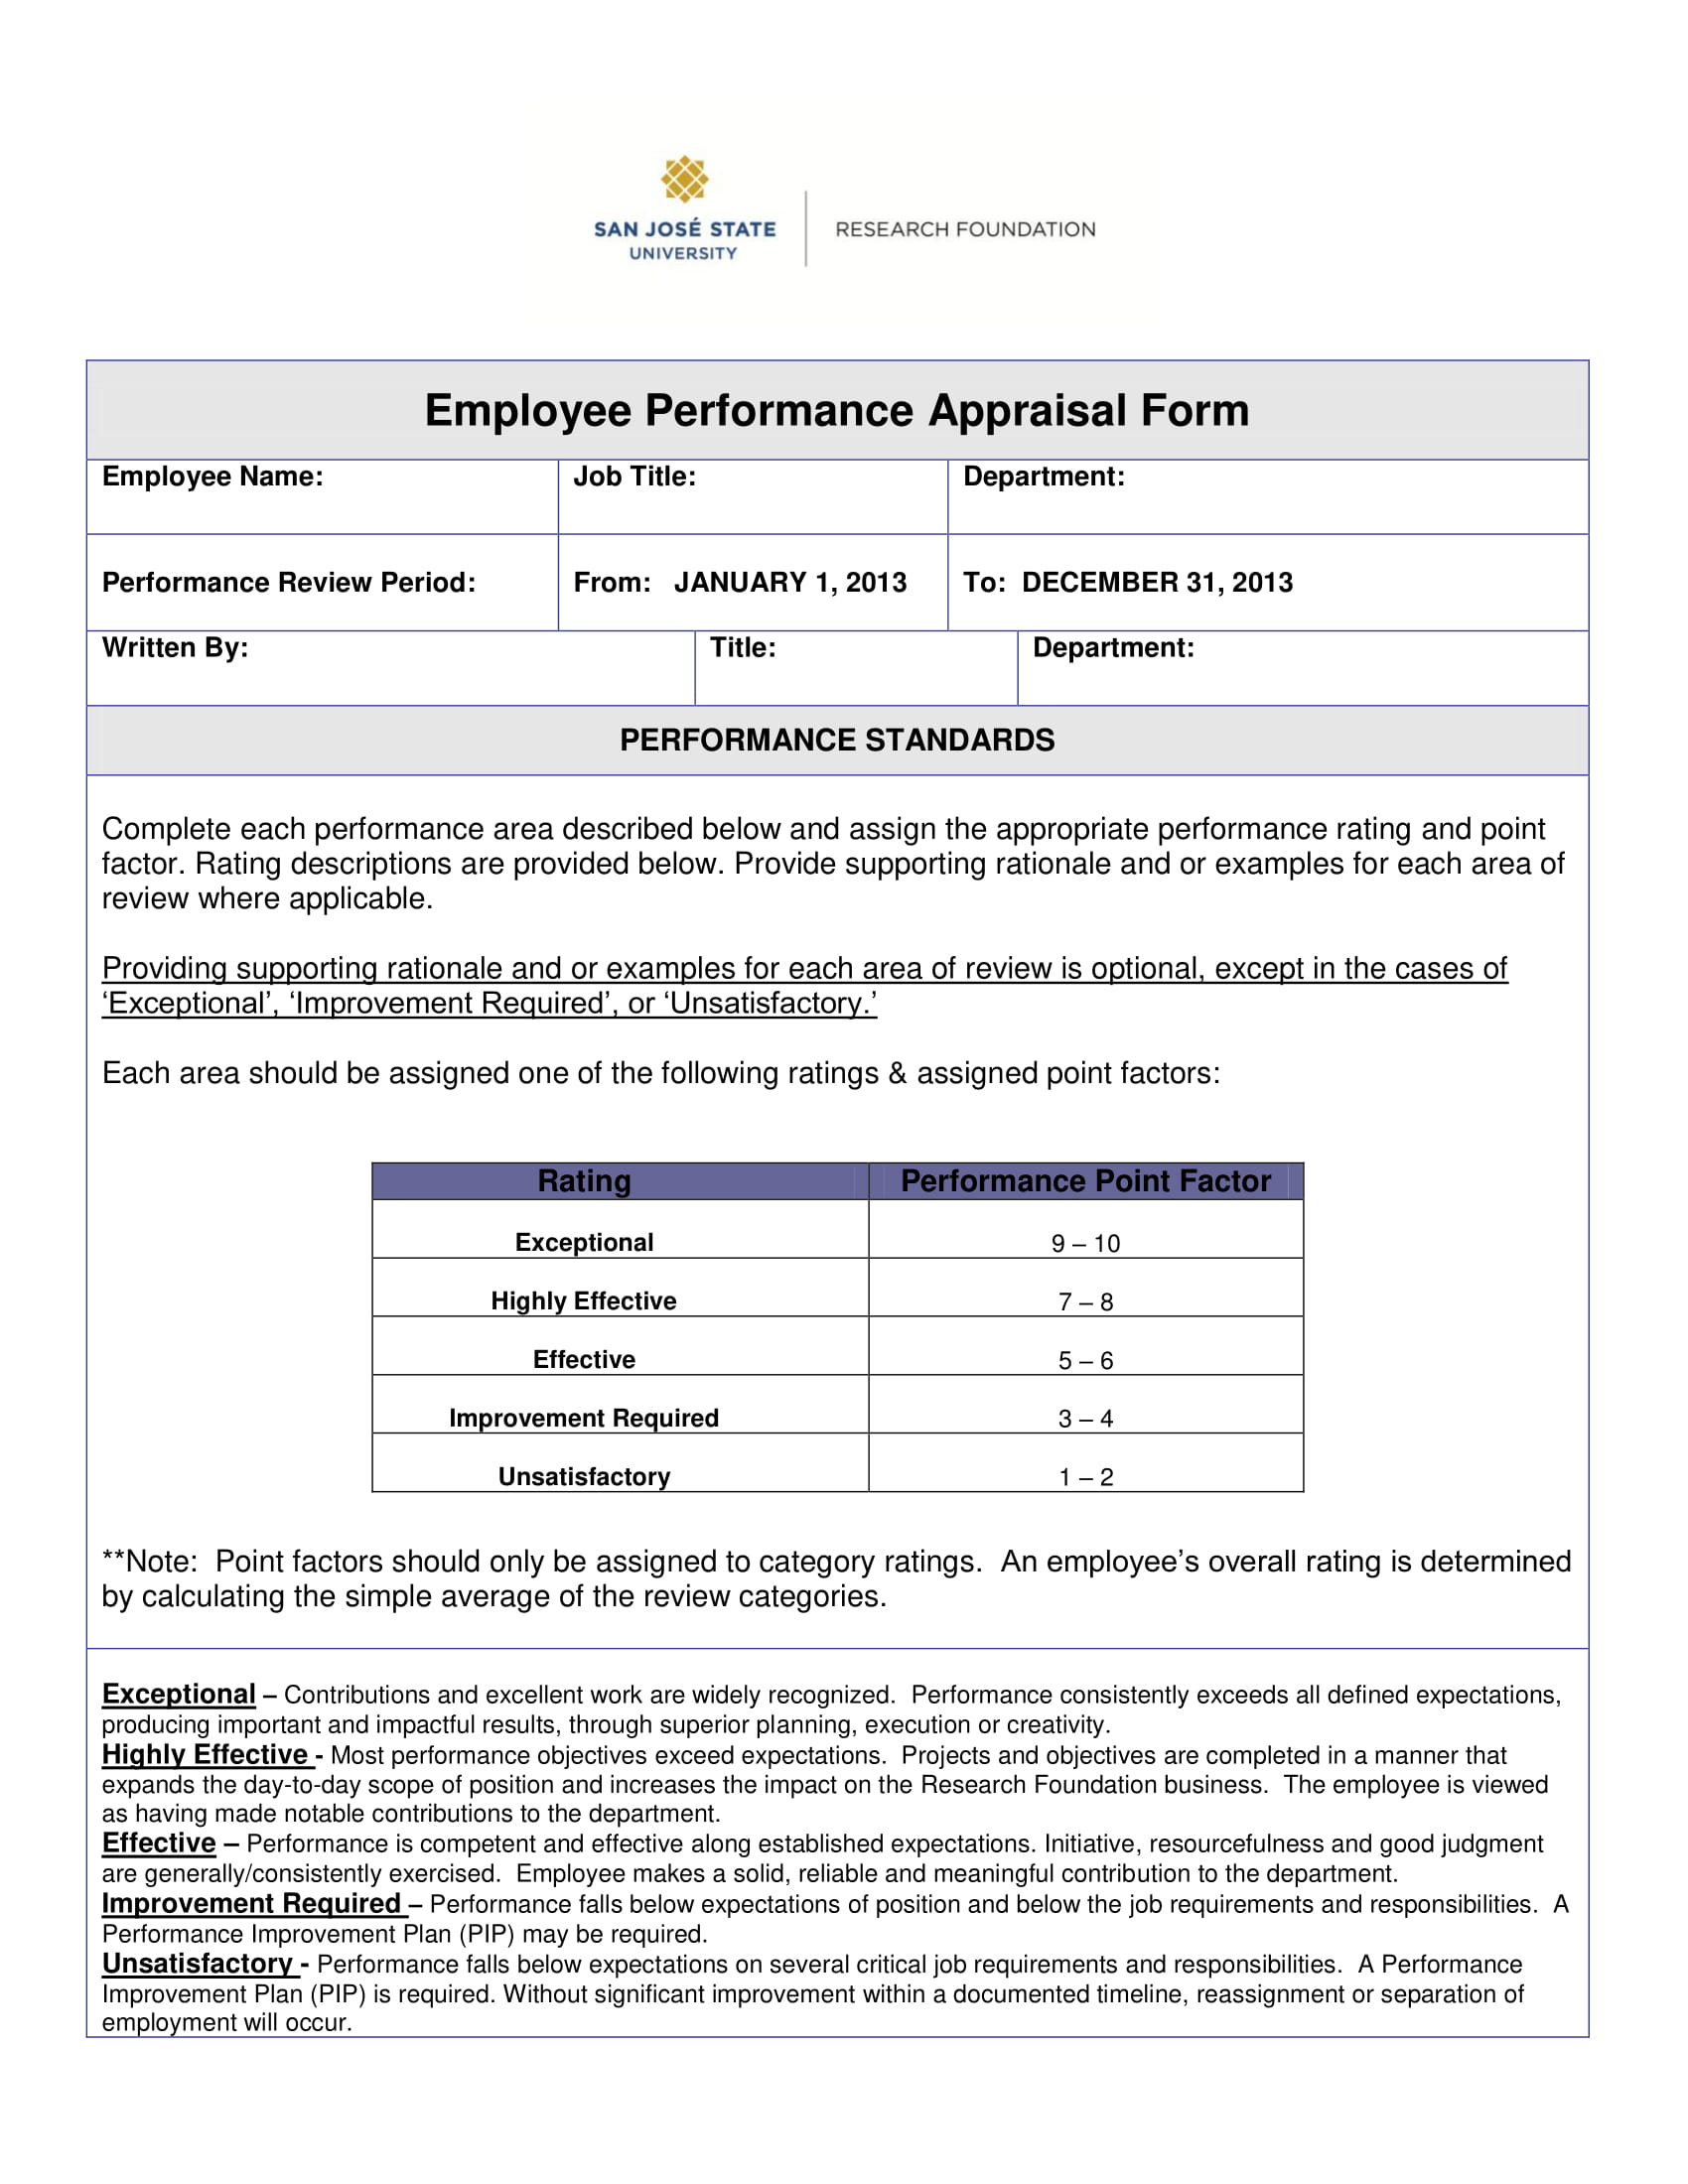 Employee Performance Appraisal Form 1